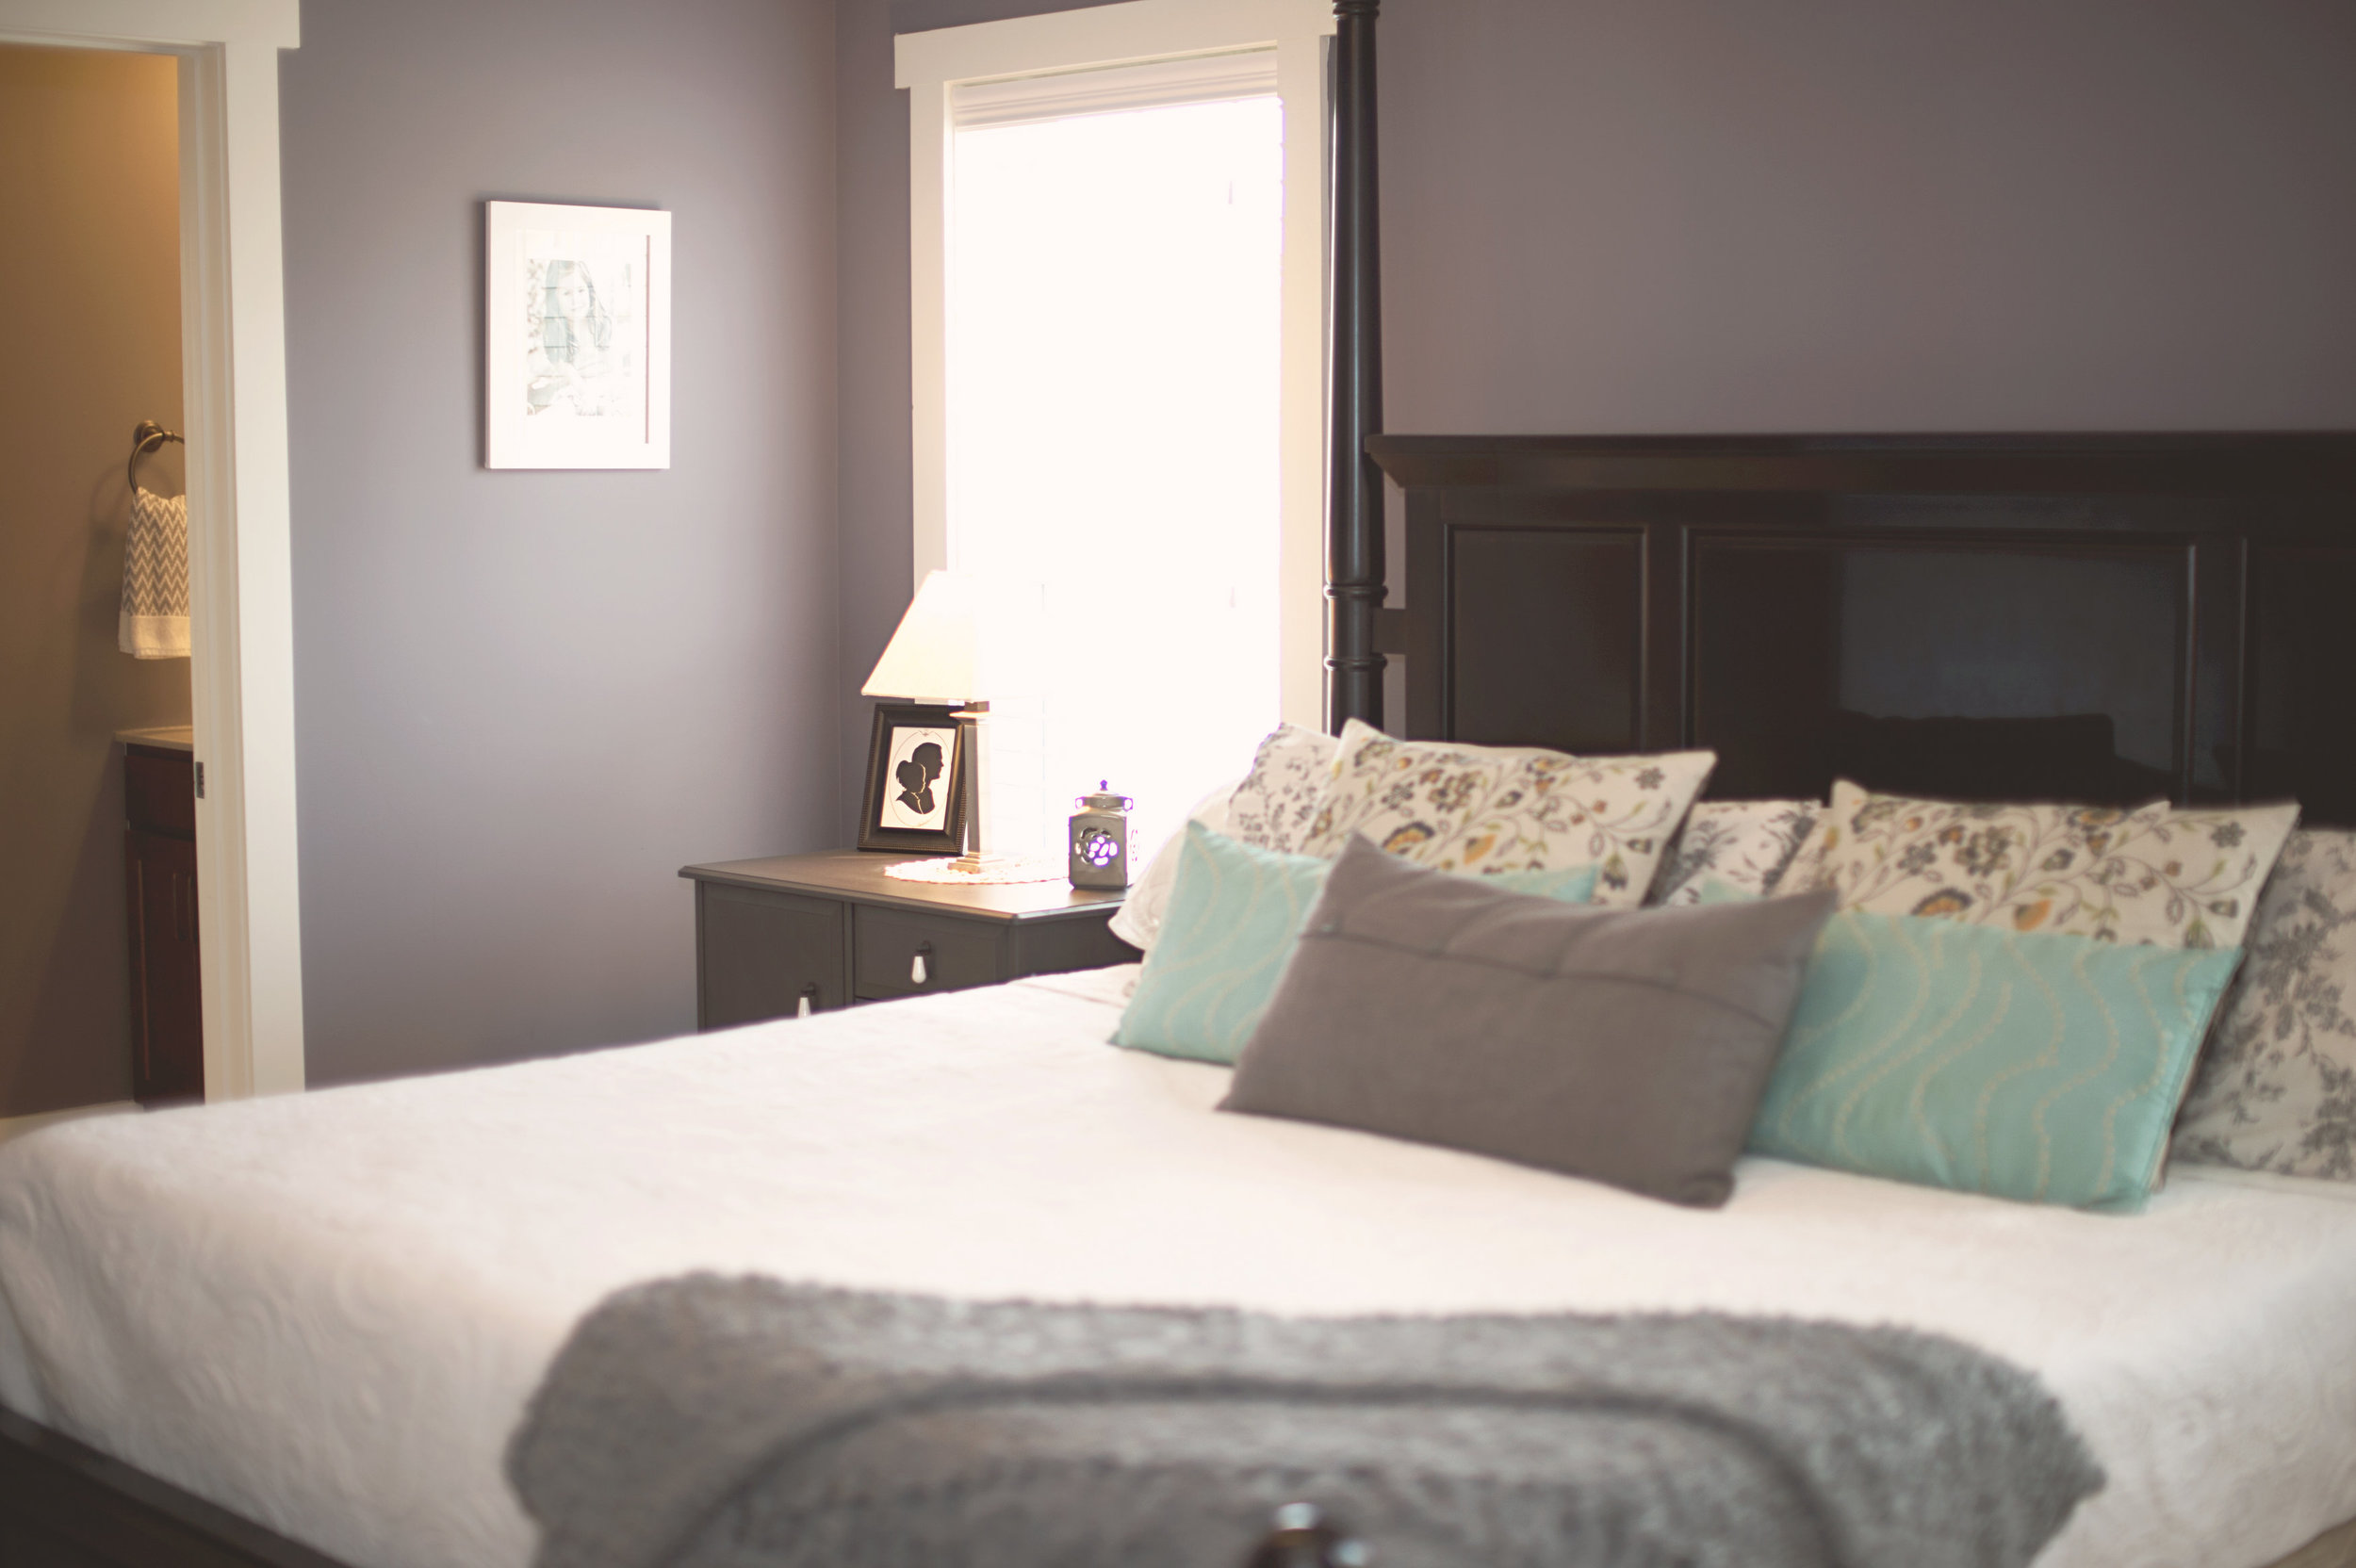 MASTER BEDROOM - muted grays and light accents